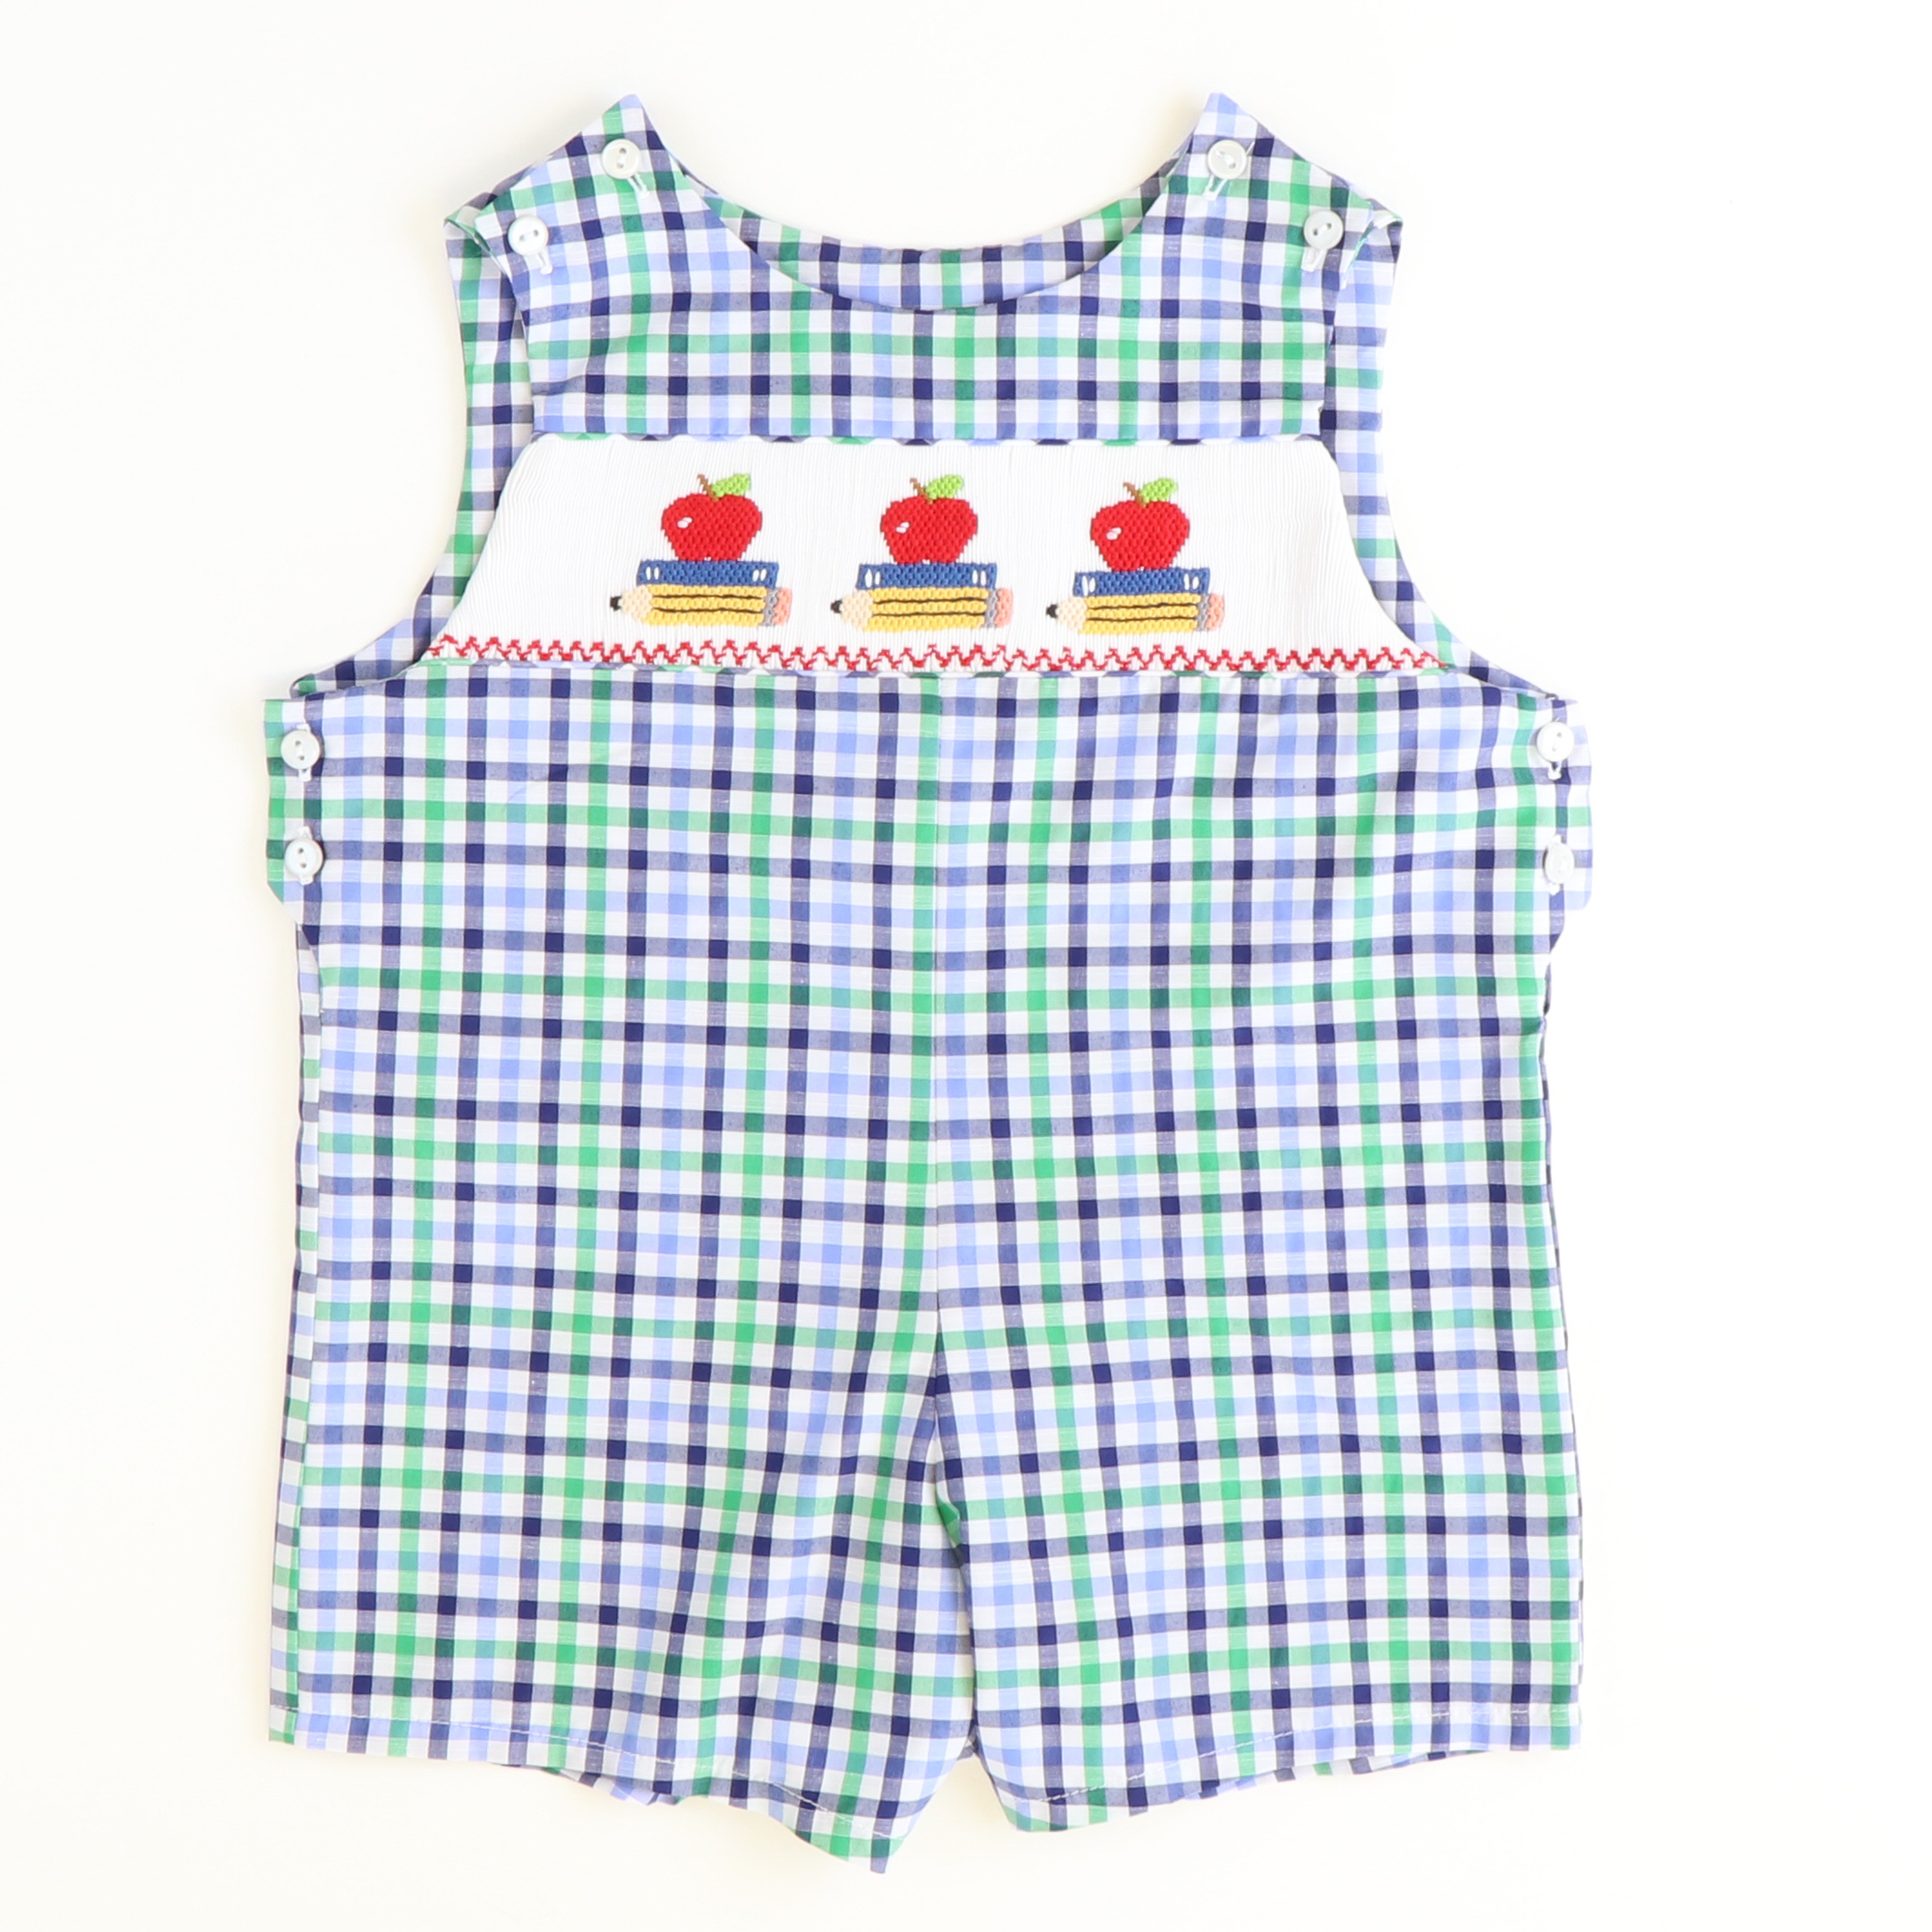 Smocked Apples & Books Shortall - Navy Blue & Green Plaid - Stellybelly